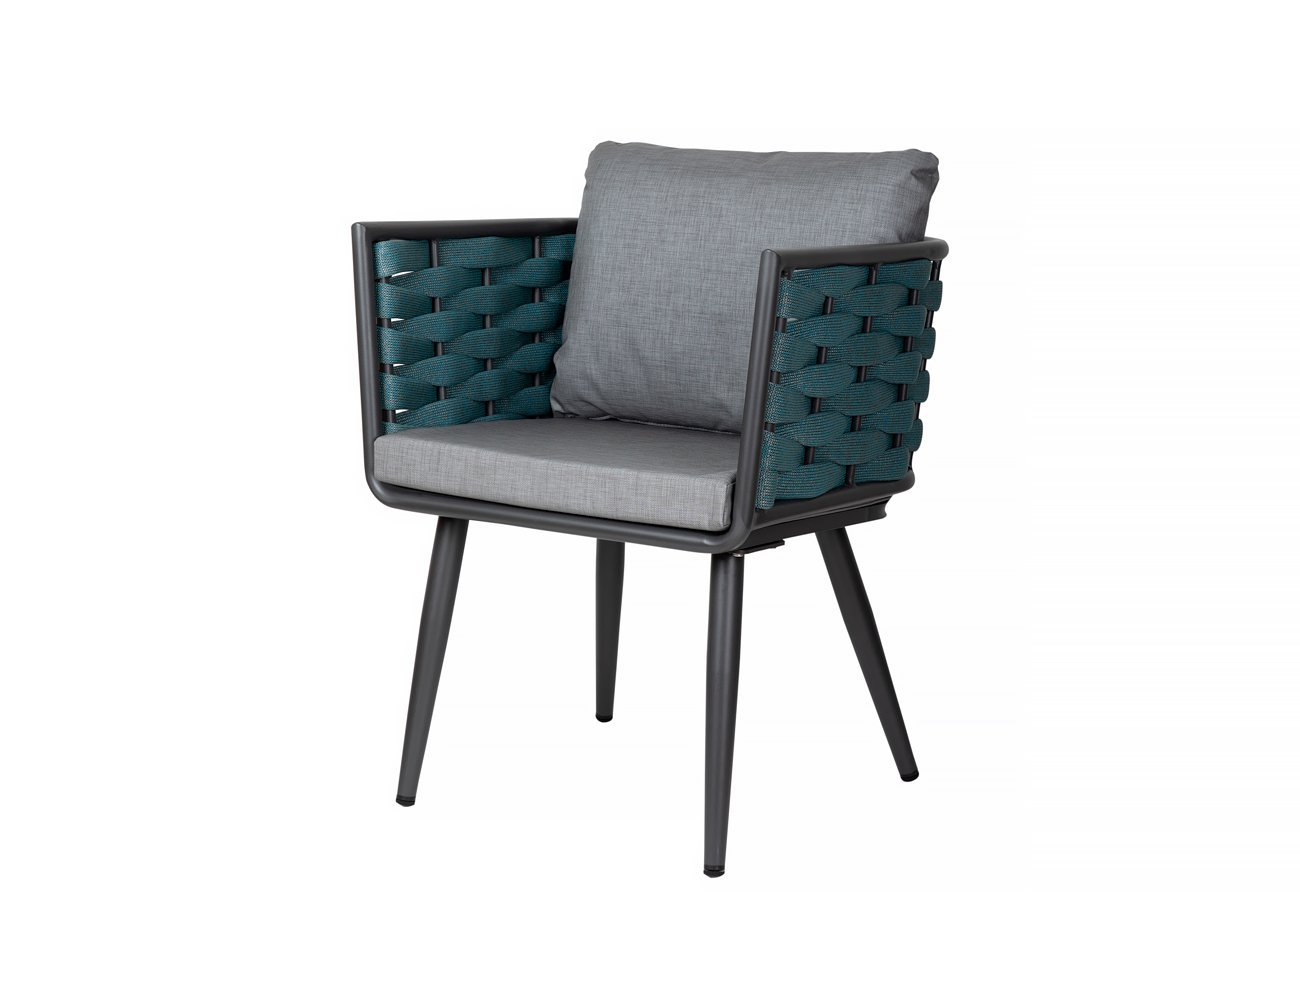 Silvereye Aluminium Rope Dining Chair - Charcoal